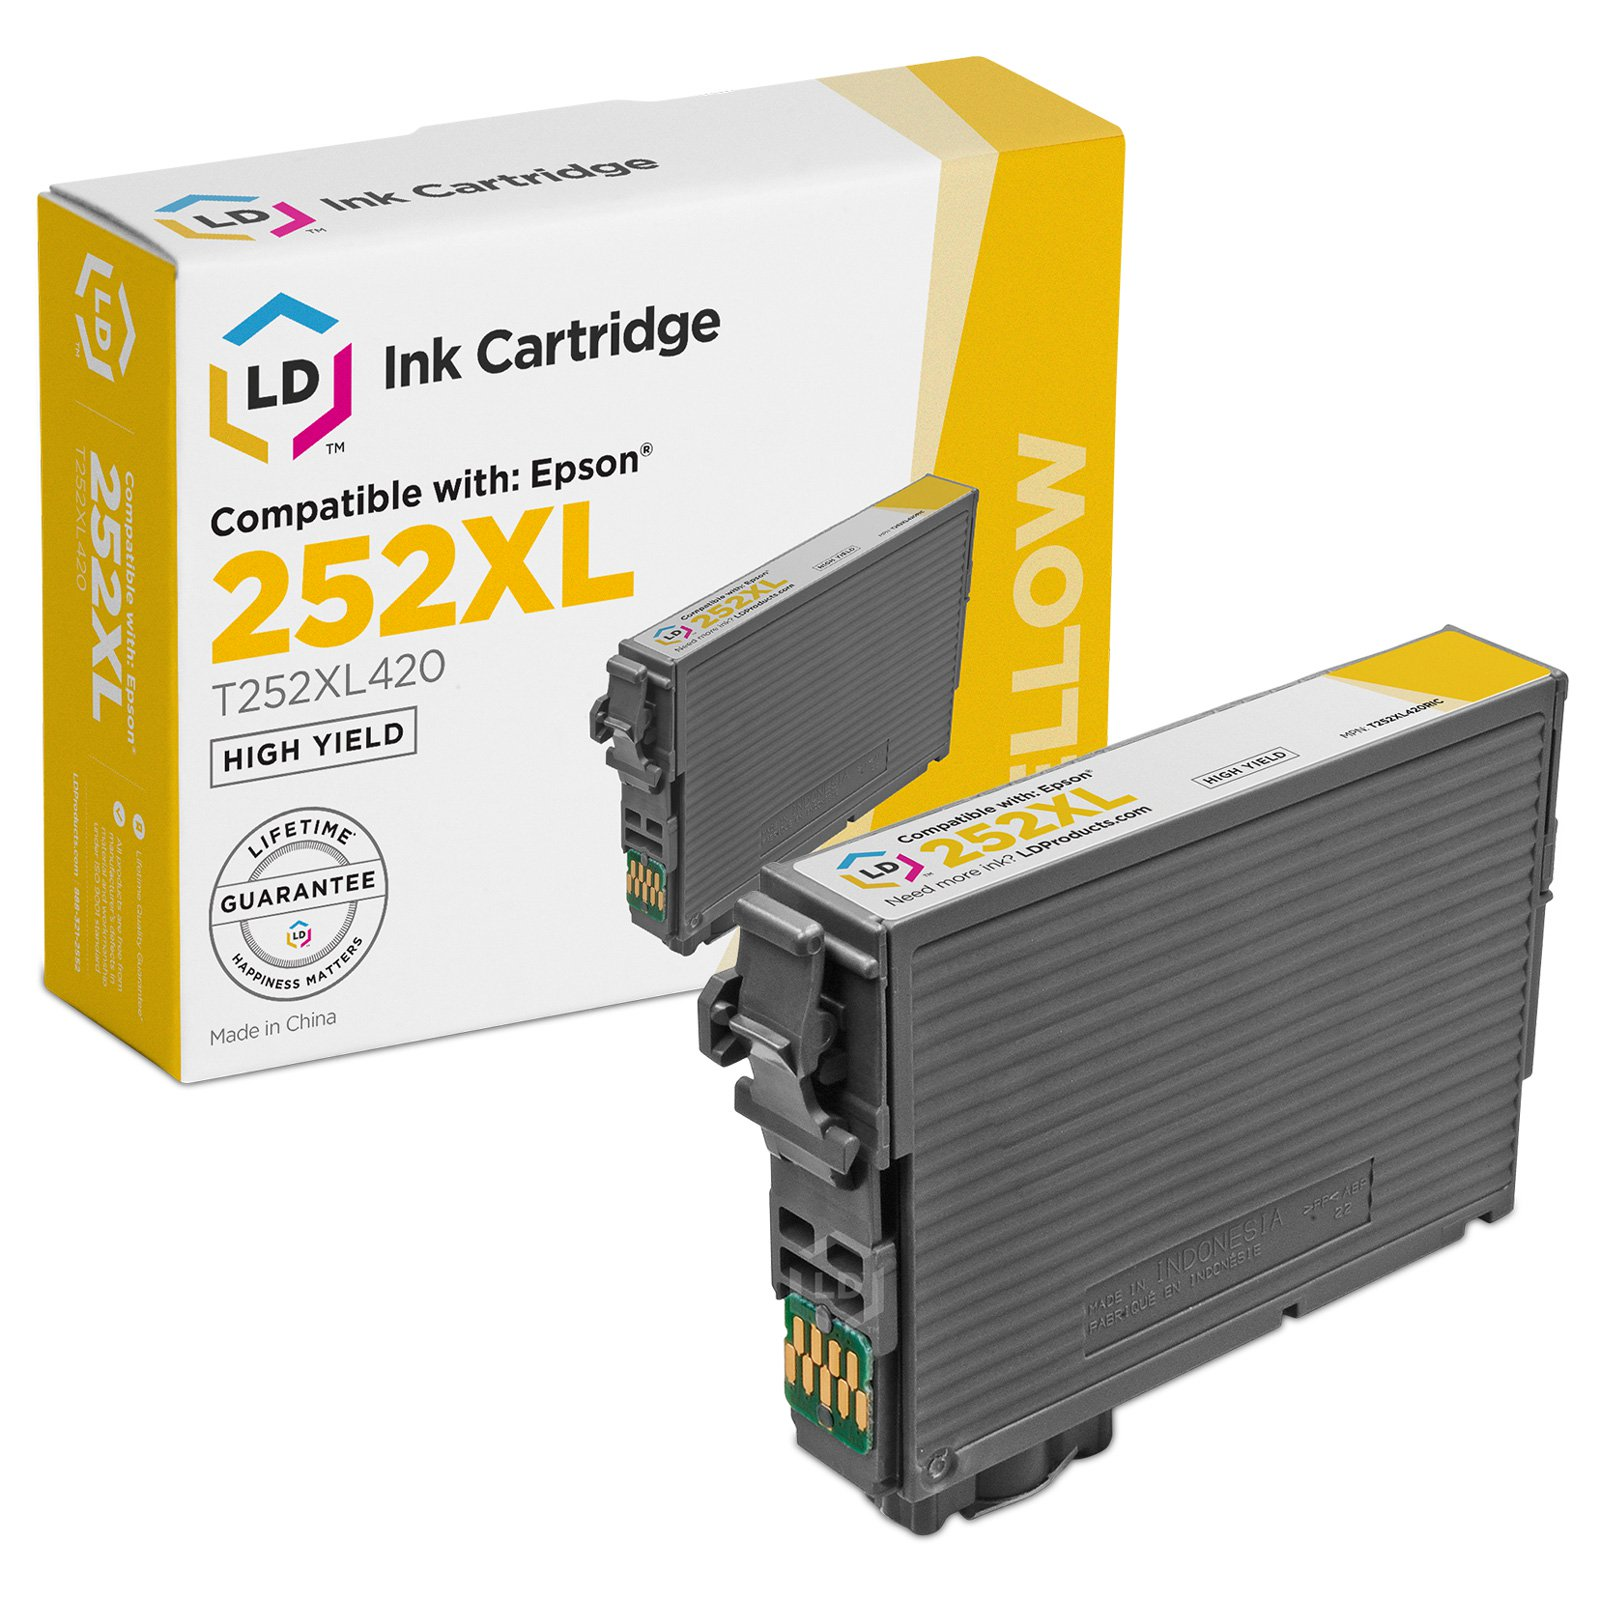 LD Remanufactured Epson 252 / 252XL / T252XL420 High Yield Yellow Cartridge for use in WorkForce WF-3620, WF-3640, WF-7110, WF-7610 & WF-7620